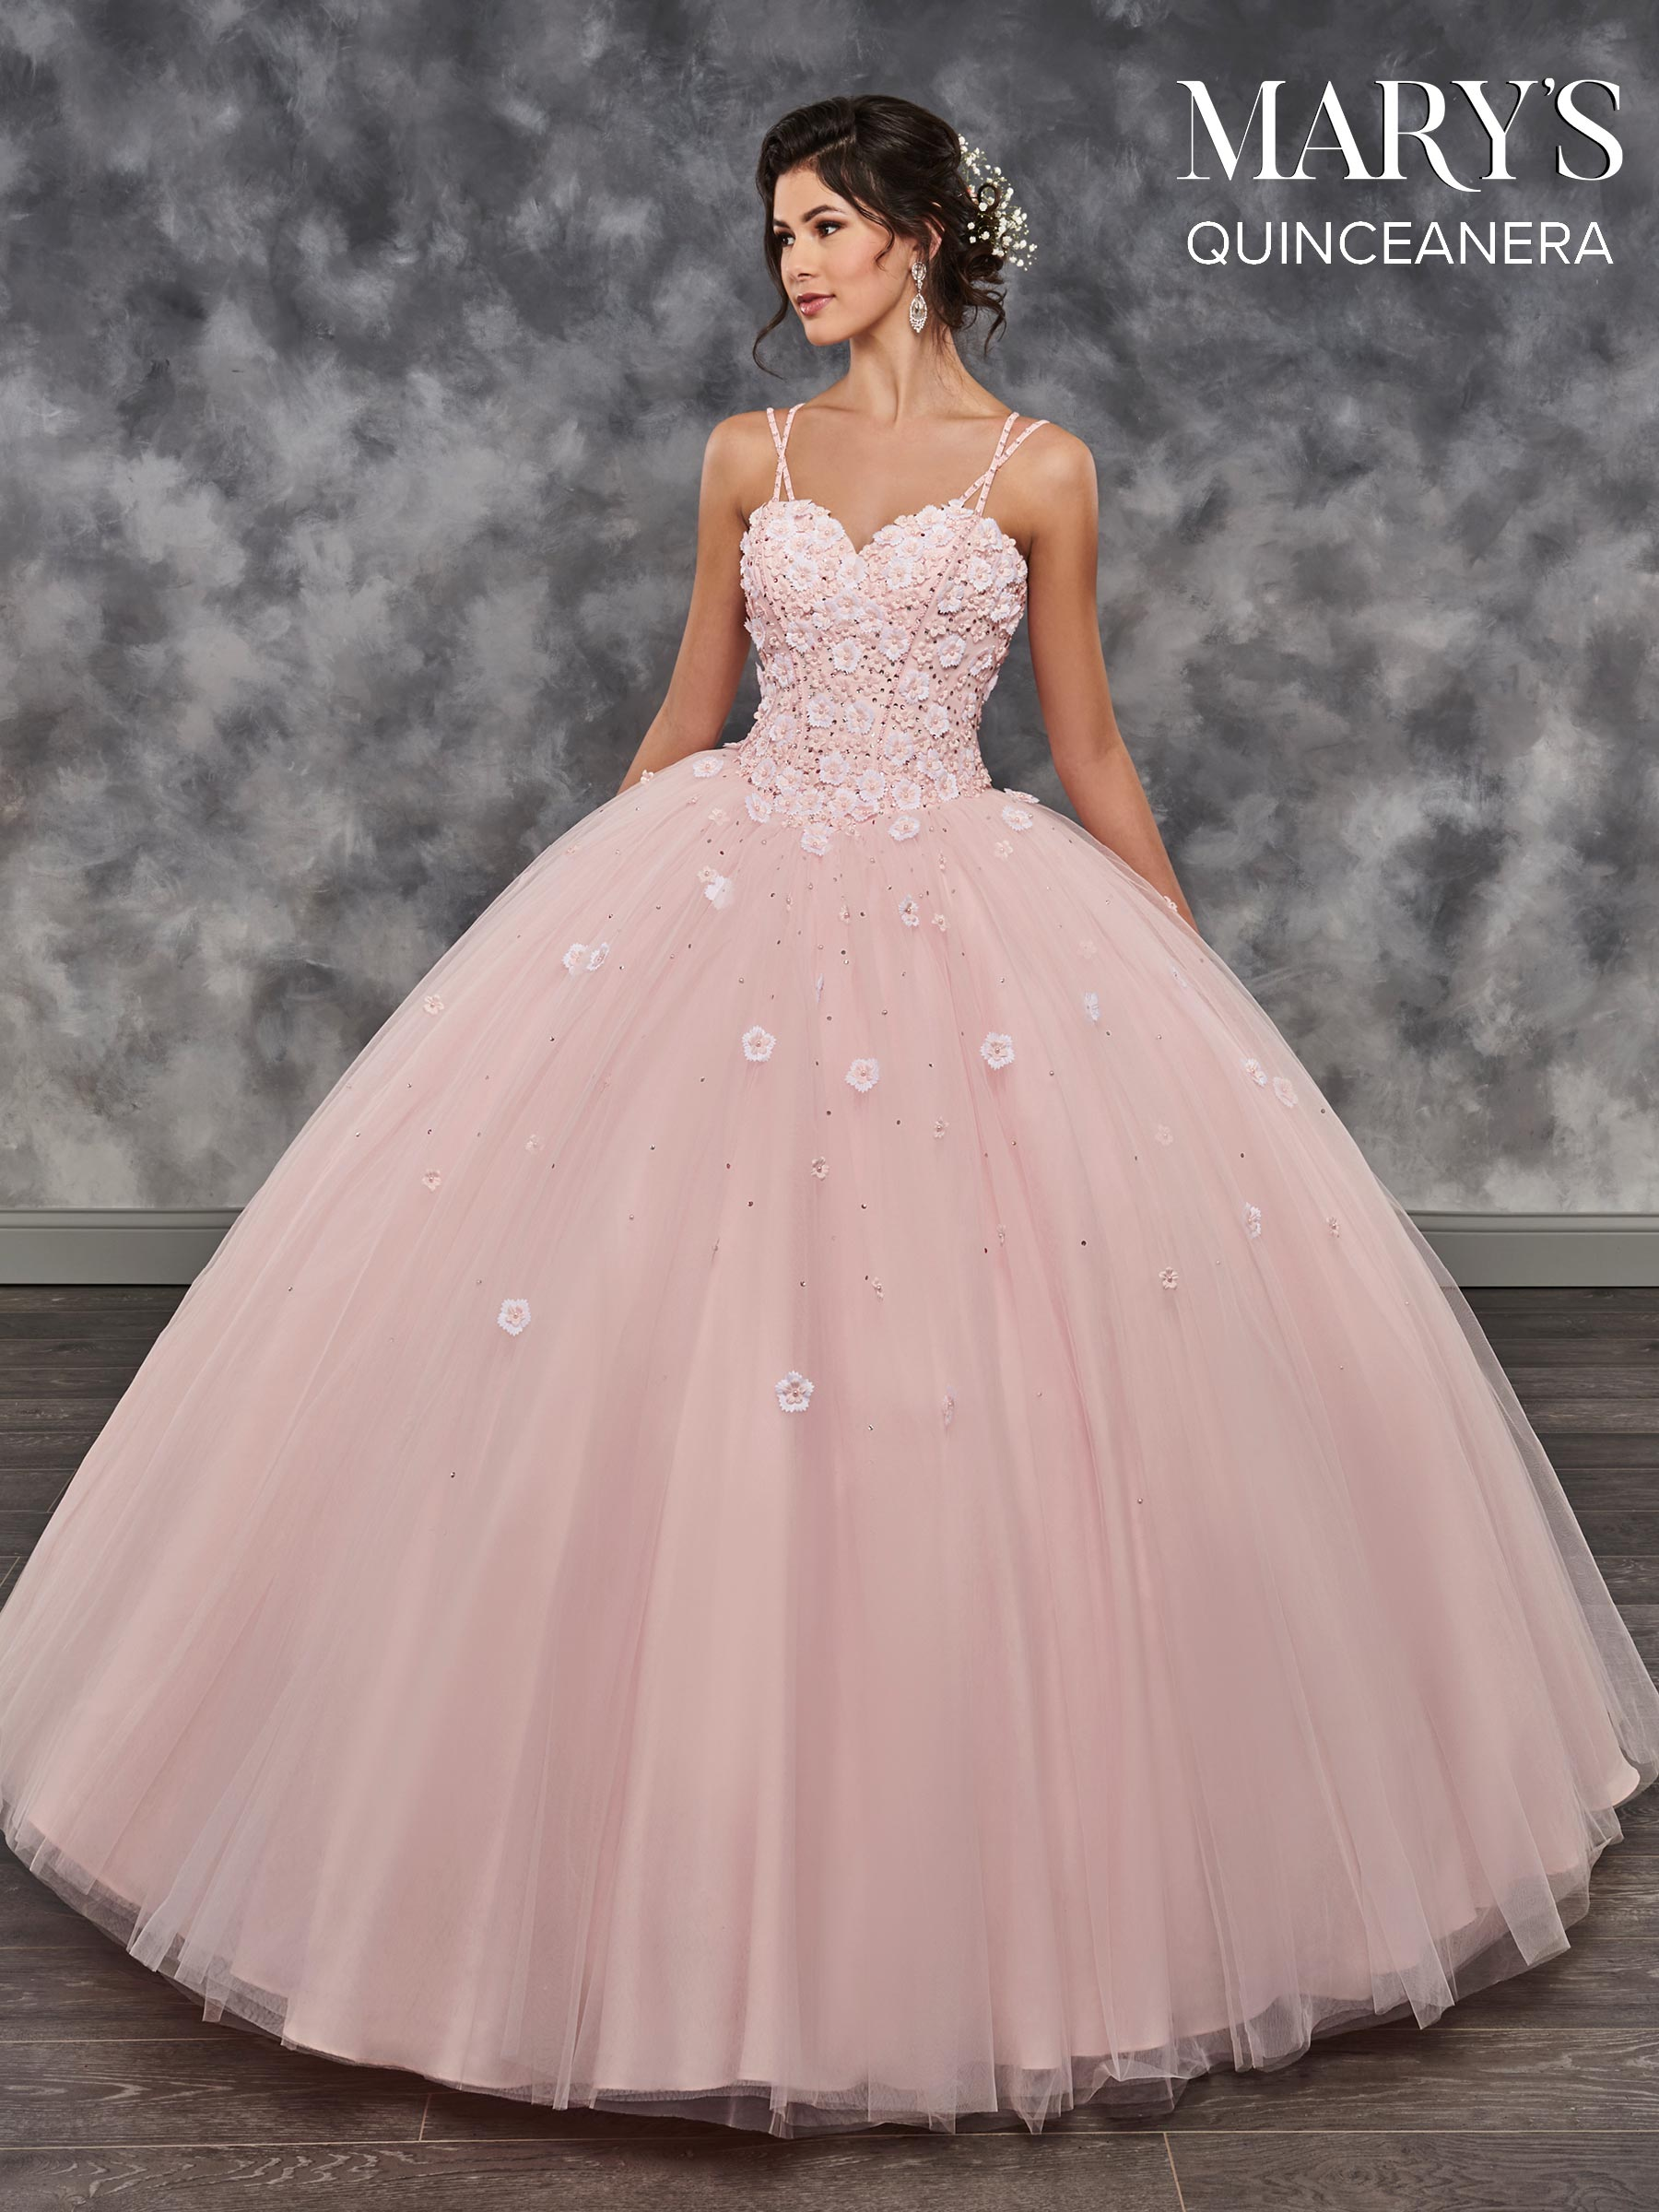 Marys Quinceanera Dresses | Mary's Quinceanera | Style - MQ1020